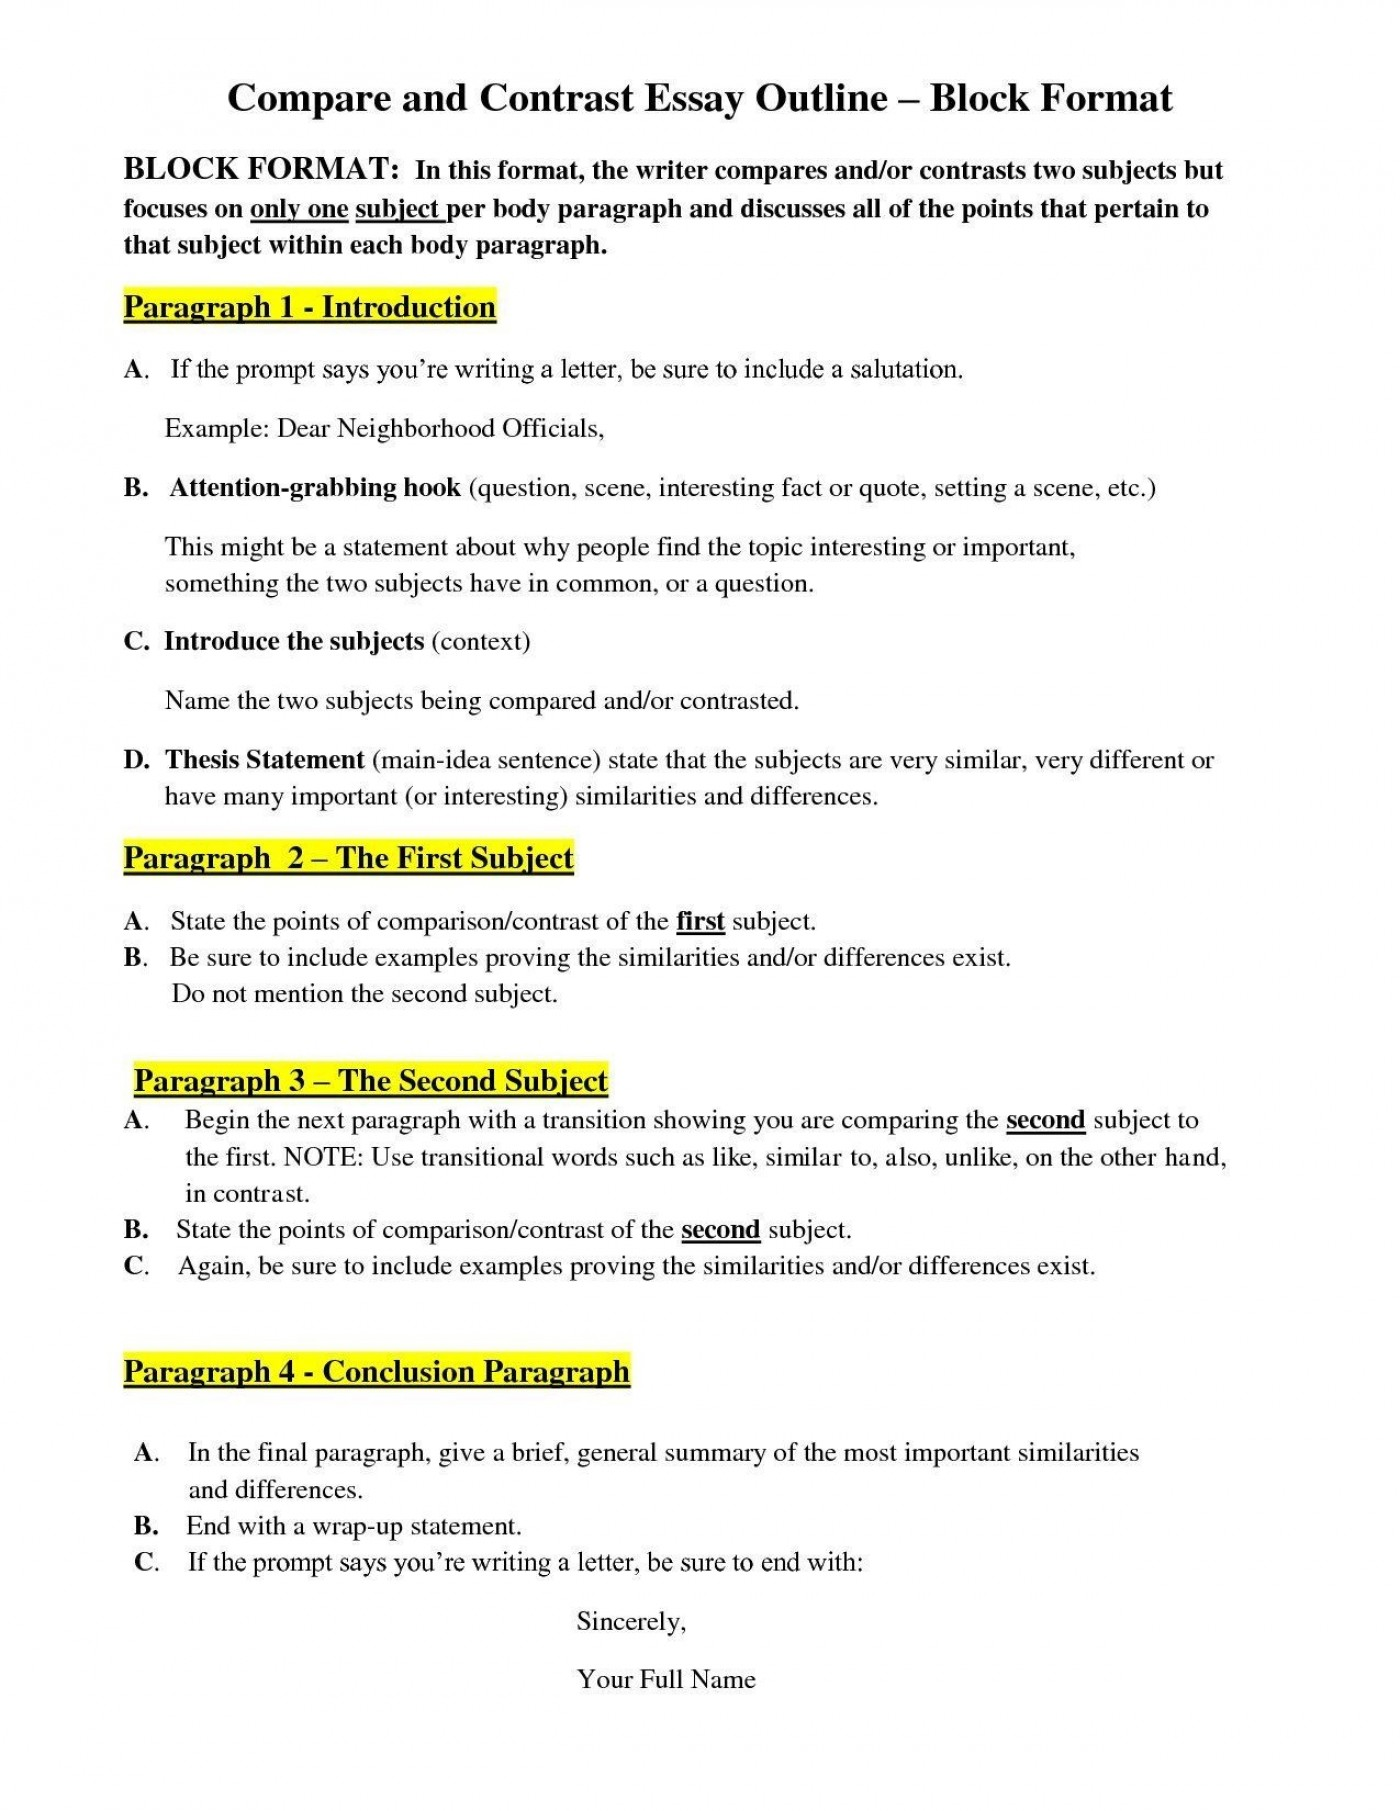 014 Essay Examplempare Andntrastmparison Best Examples Of Scenario In 6th Grade An Goo 3rd Food 5th Middle School Block Format Pdf High 4th Vs Striking Compare And Contrast Example Topics 8 8th College Outline 1400